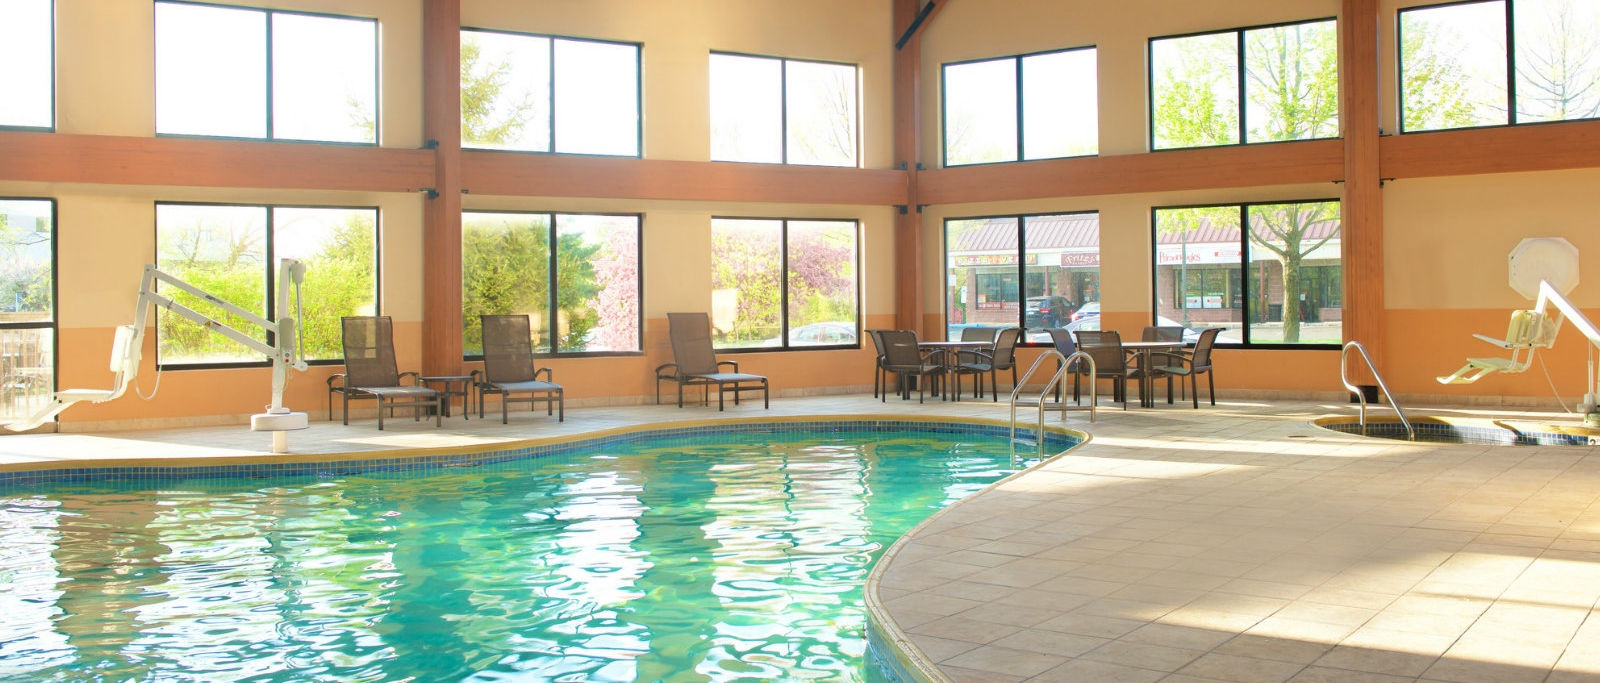 Hotel Features | Indoor Pool